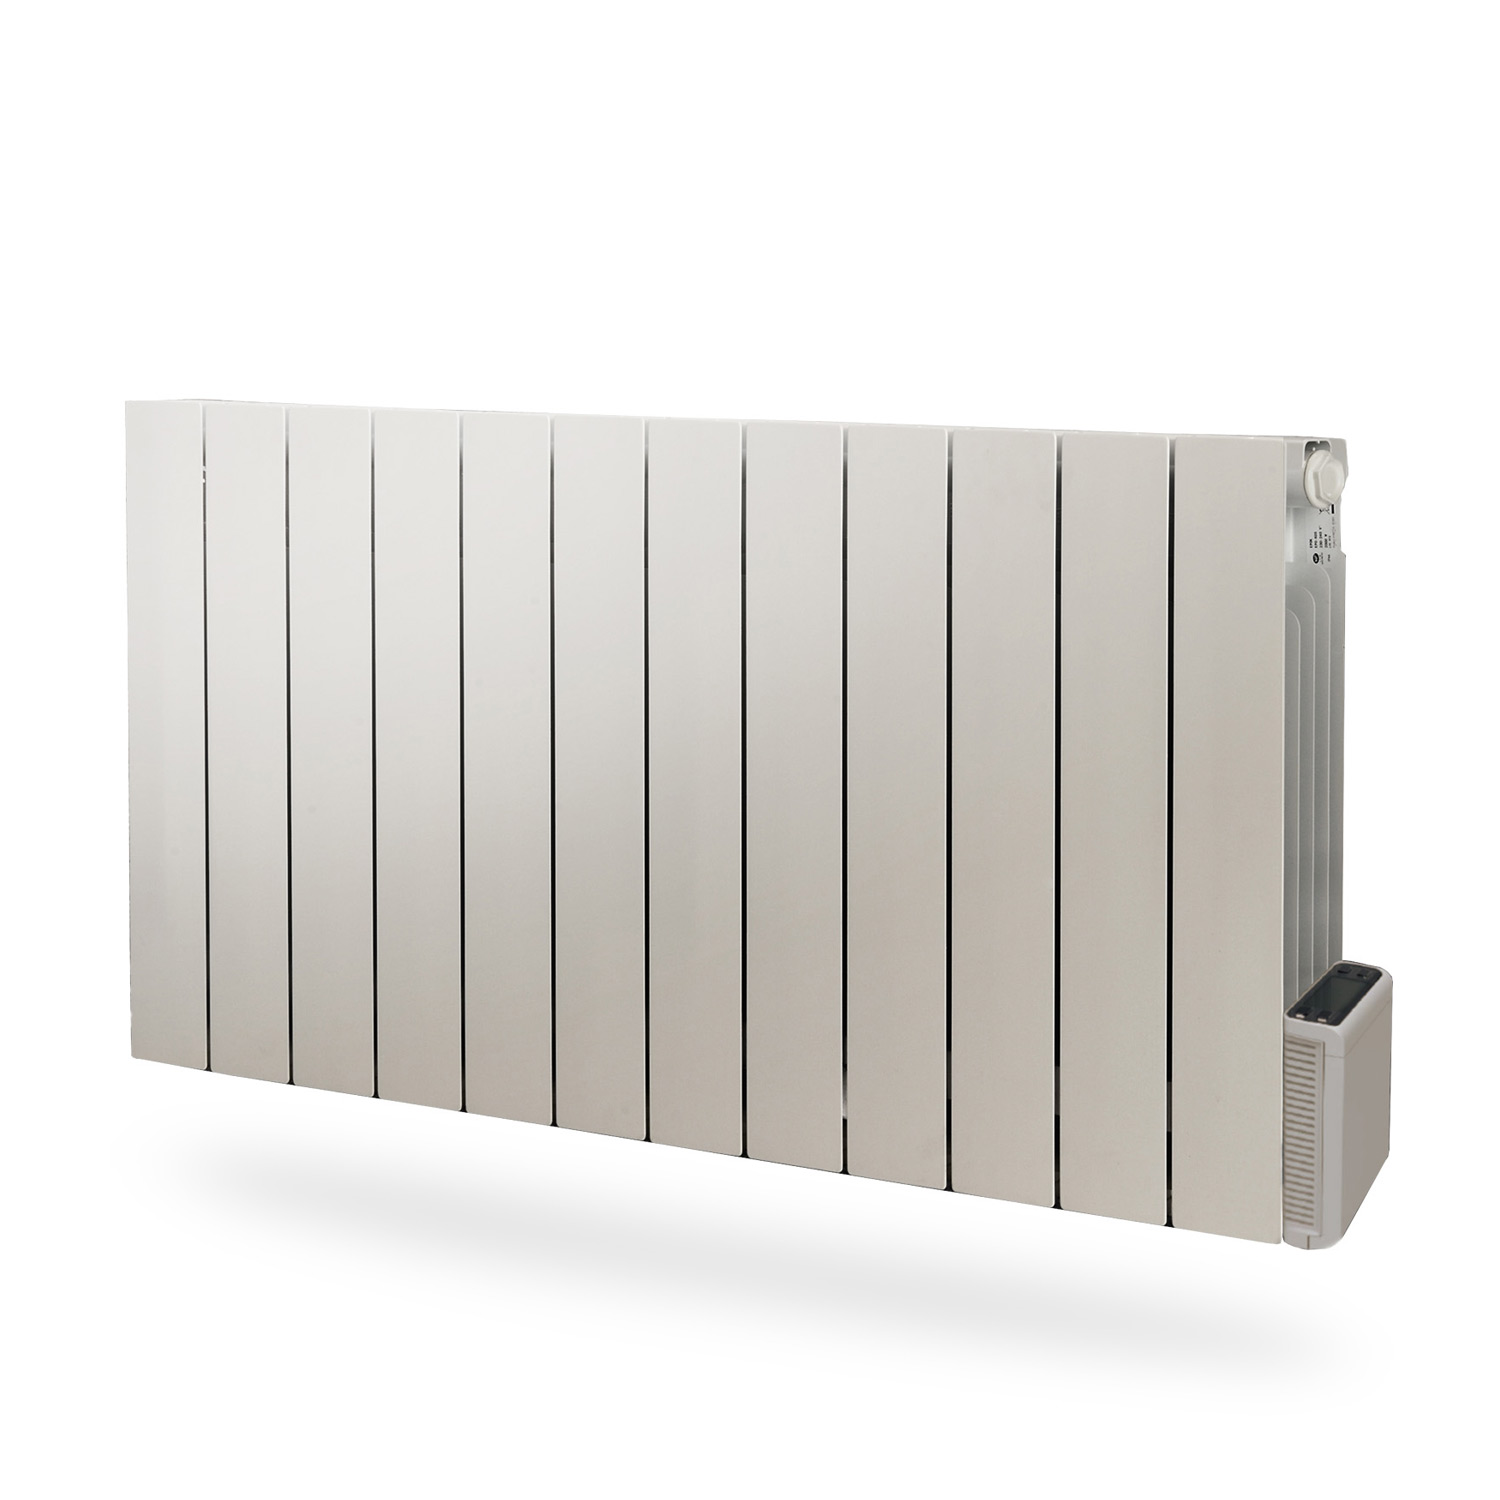 http://www.radson.com/images/products/electricradiators/thaj-electric-radiators-radson-outside.jpg